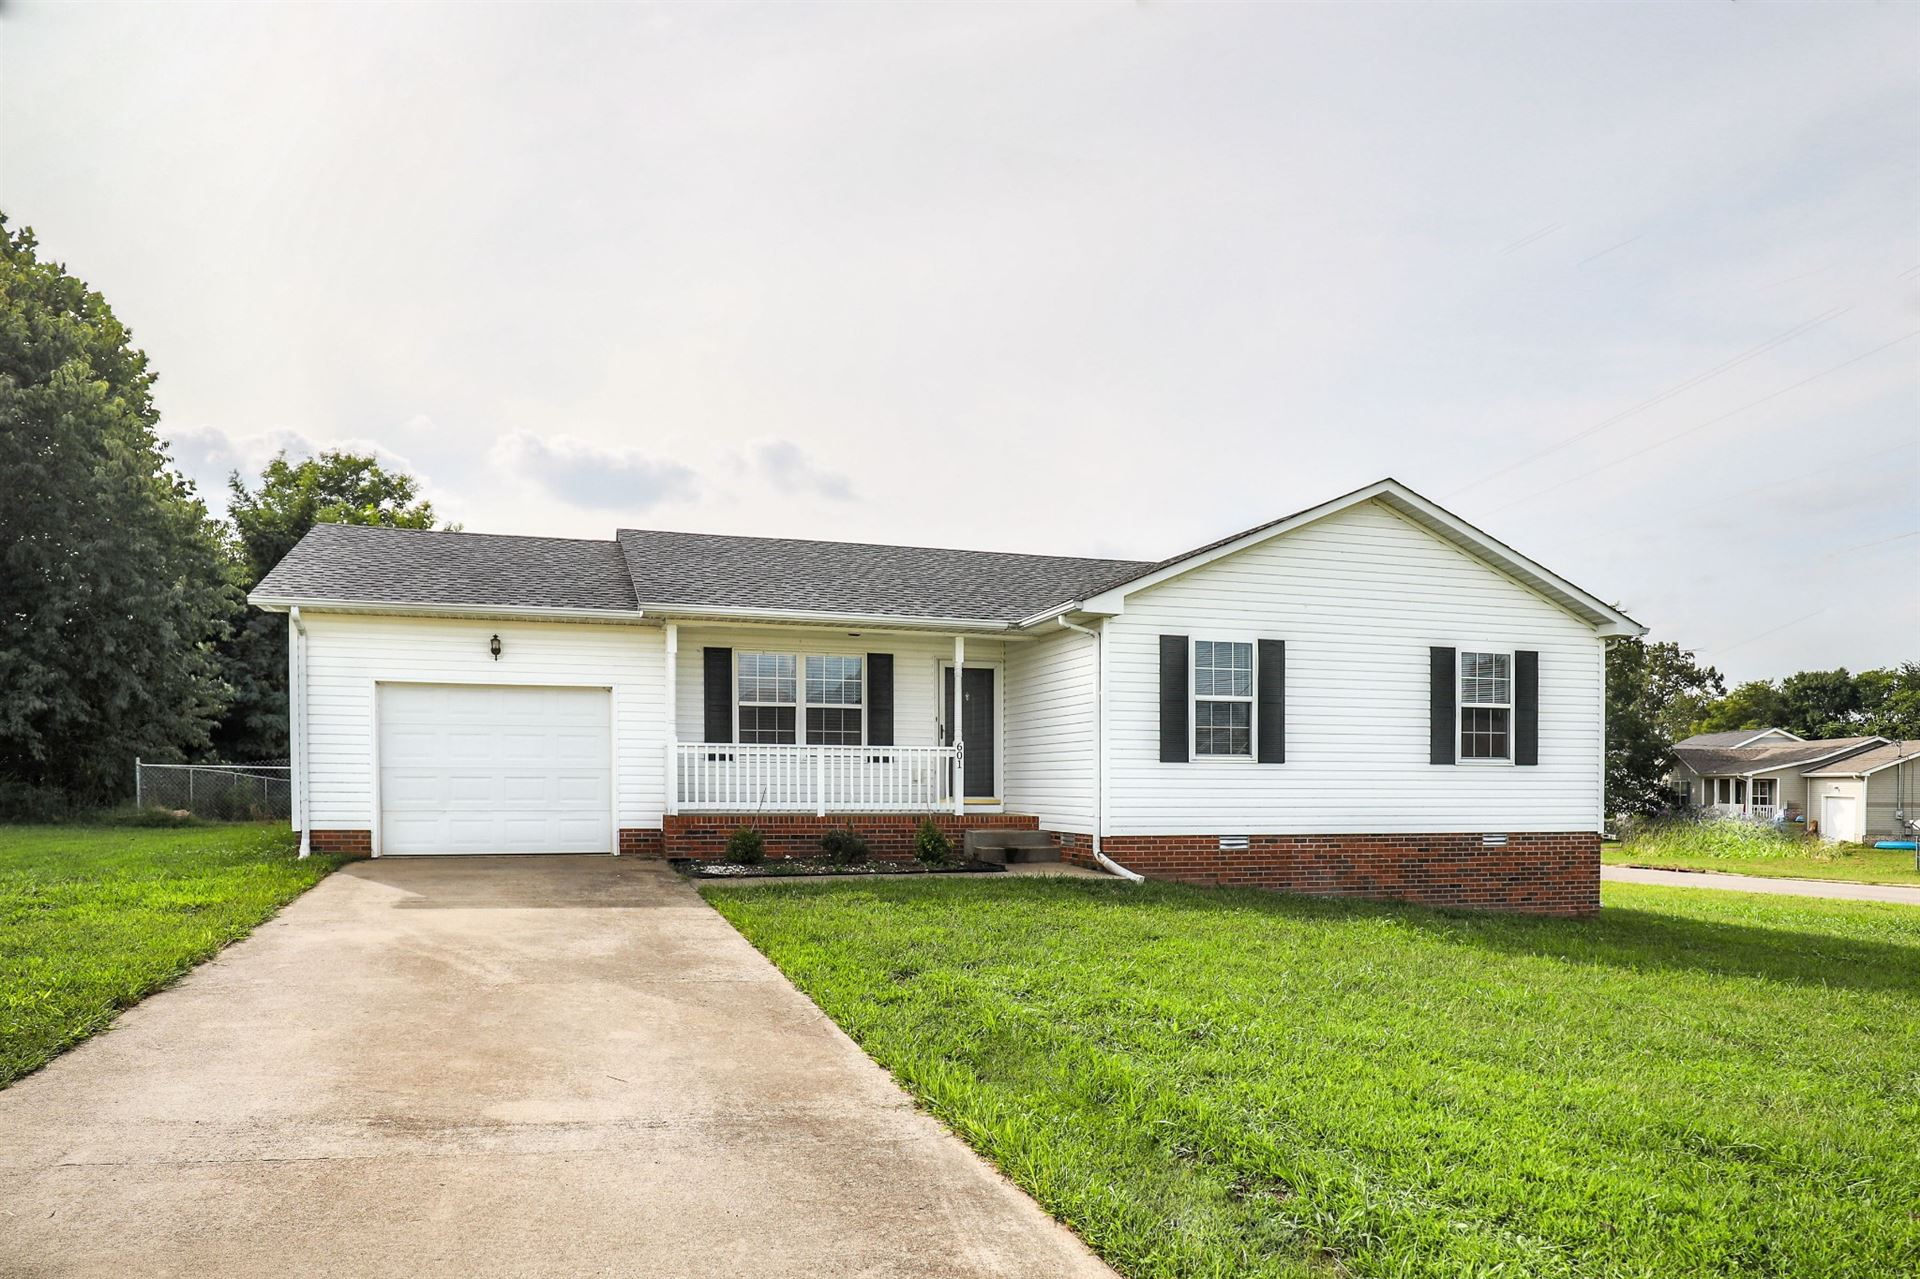 601 Millie Dr, Oak Grove, KY 42262 - MLS#: 2190510